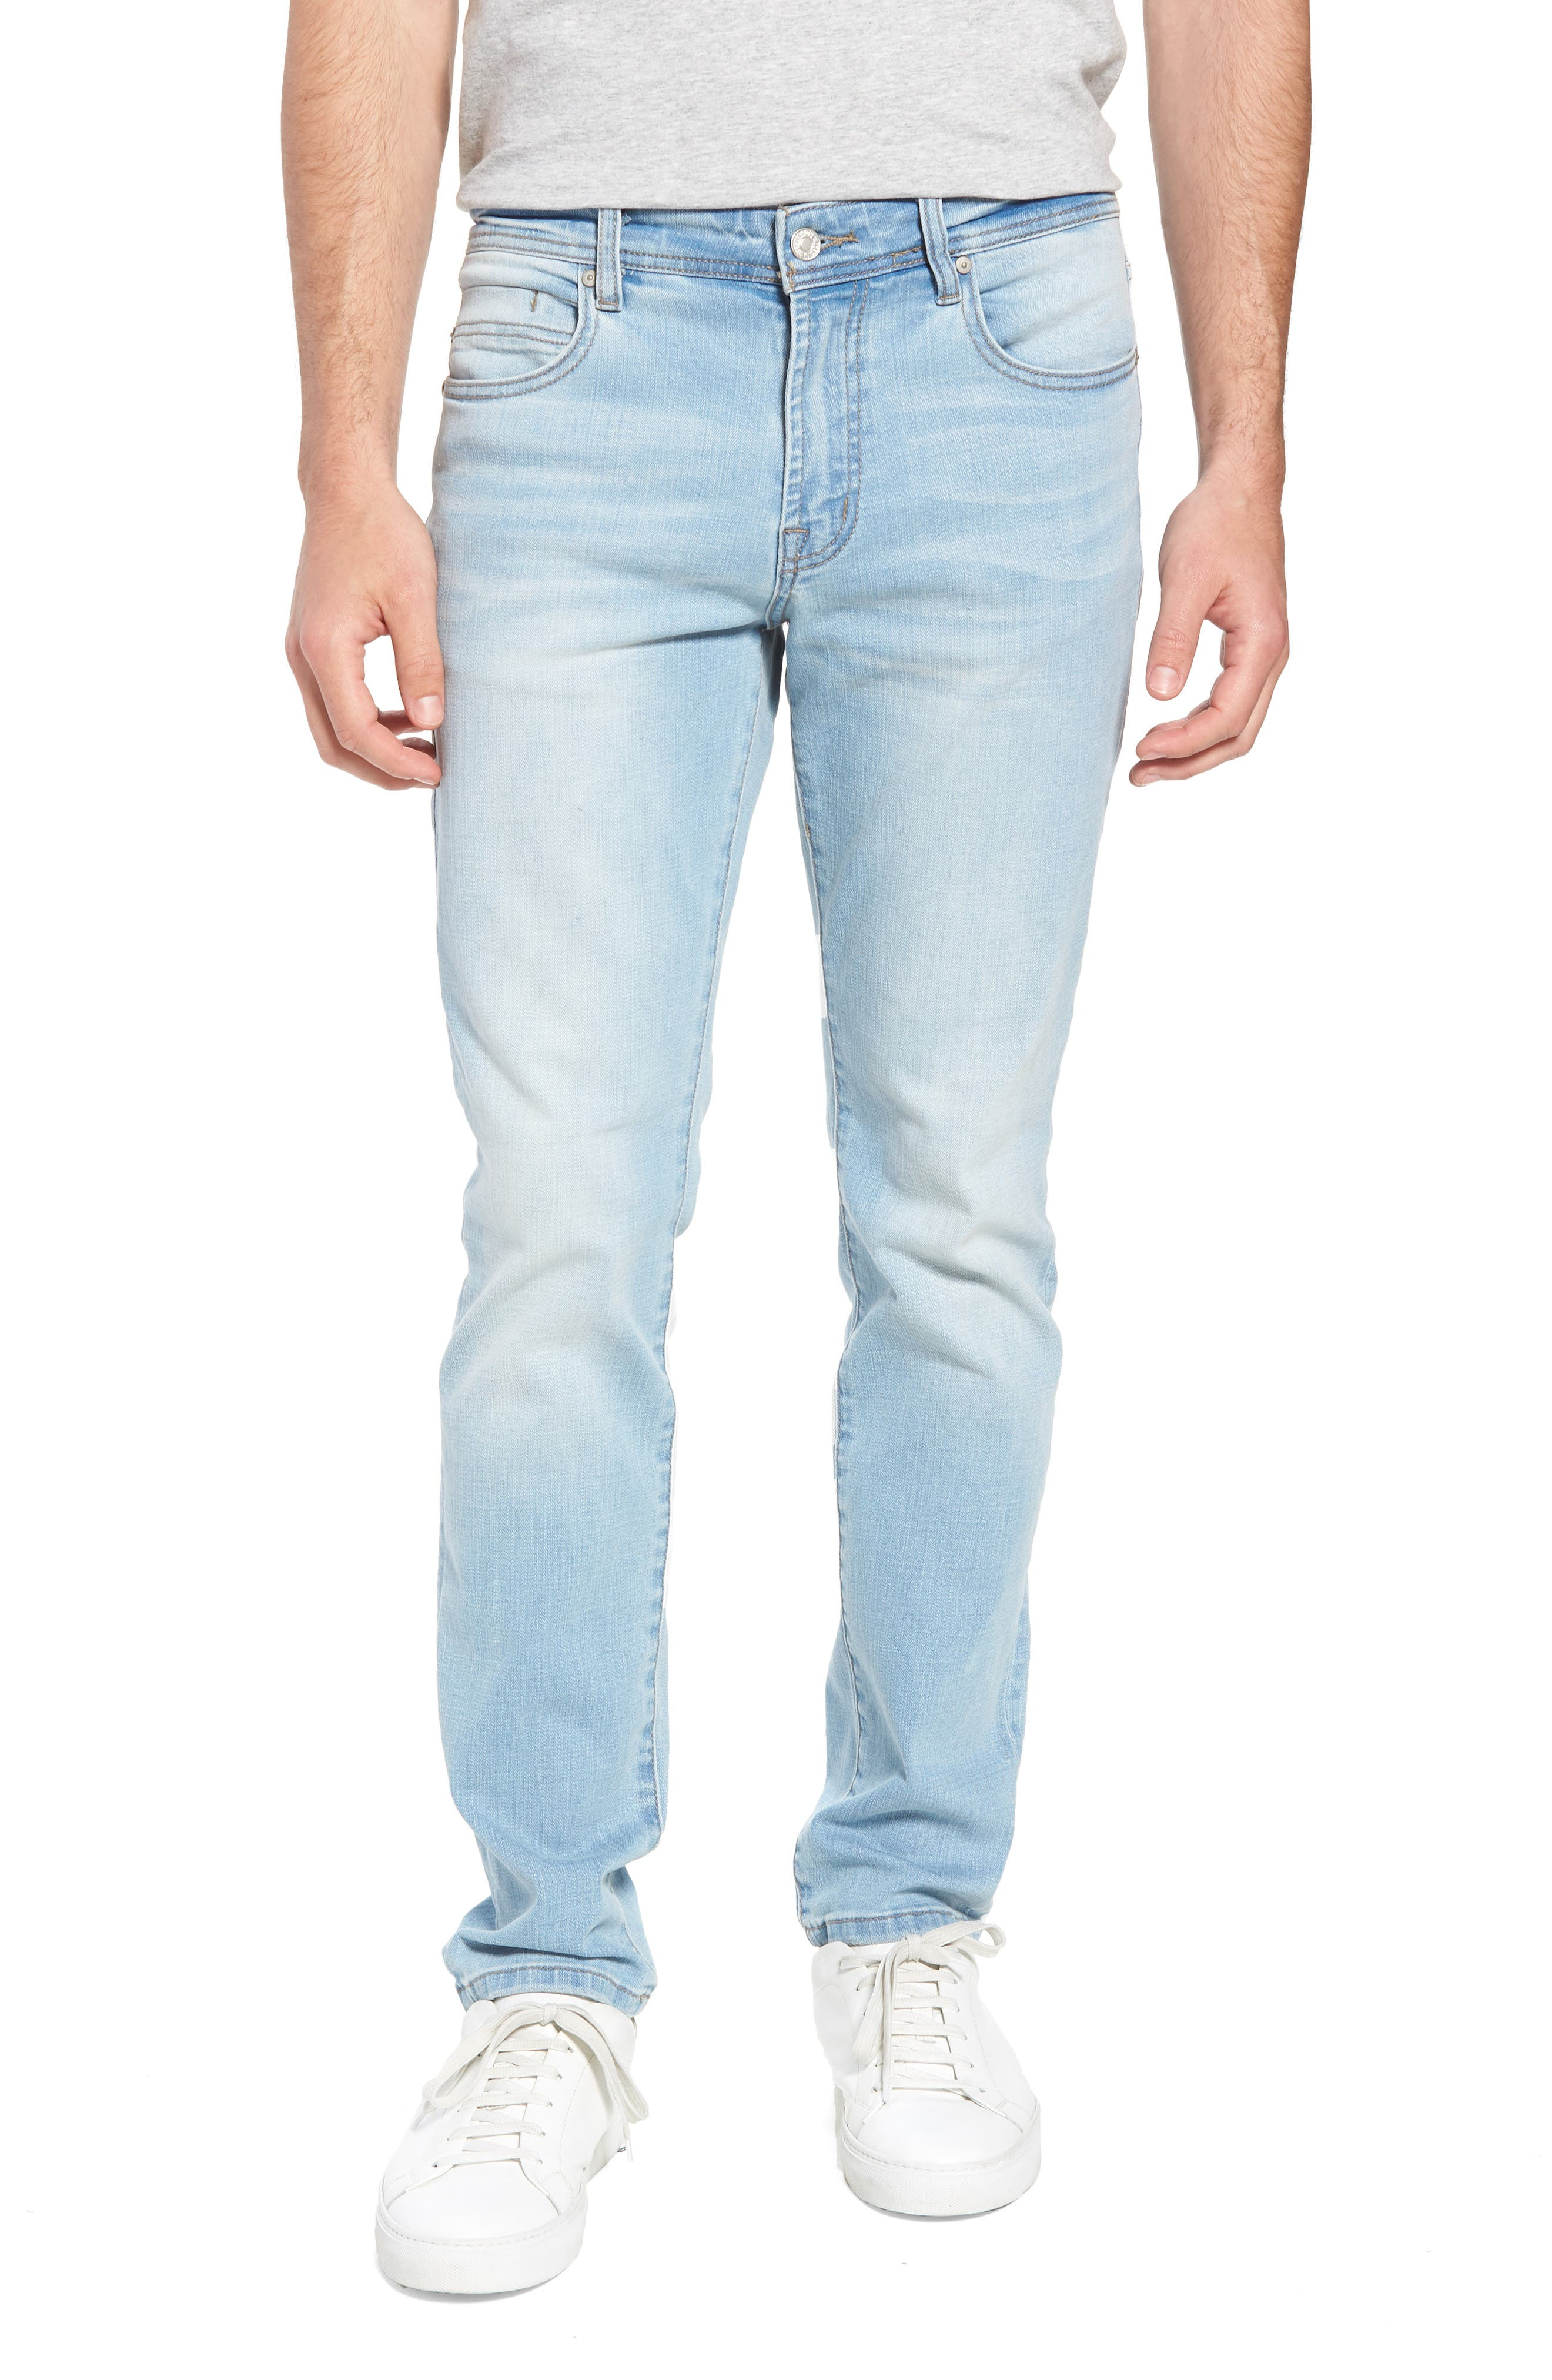 Liverpool Jeans Co. Slim Straight Leg Jeans (Riverside Light)